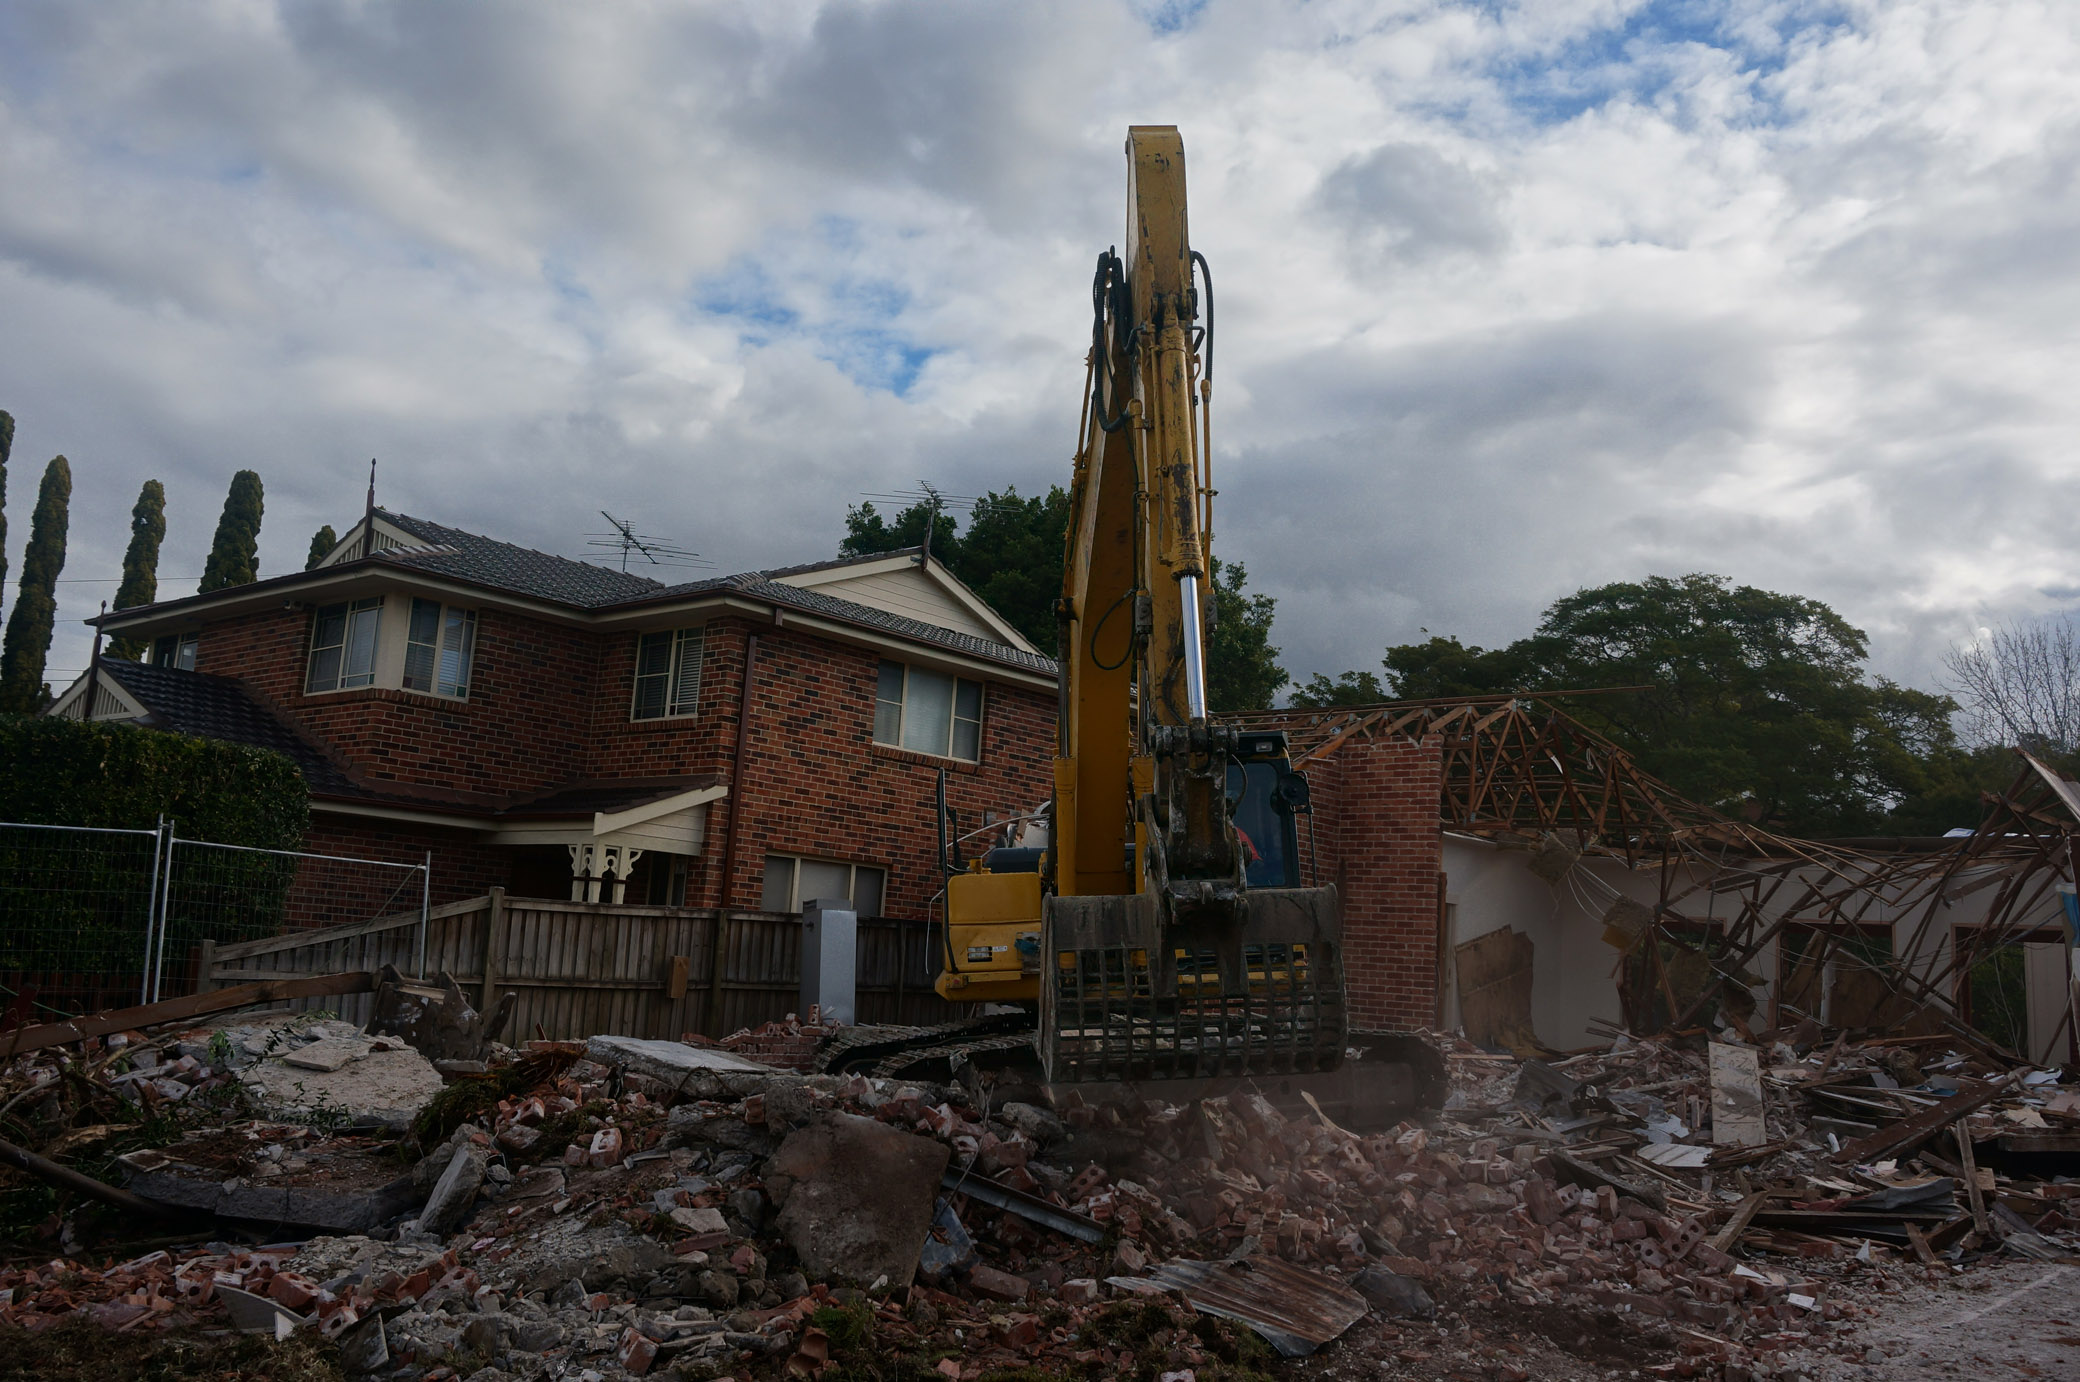 Clearing rubble with an excavator at demoliton site in West Ryde.jpg